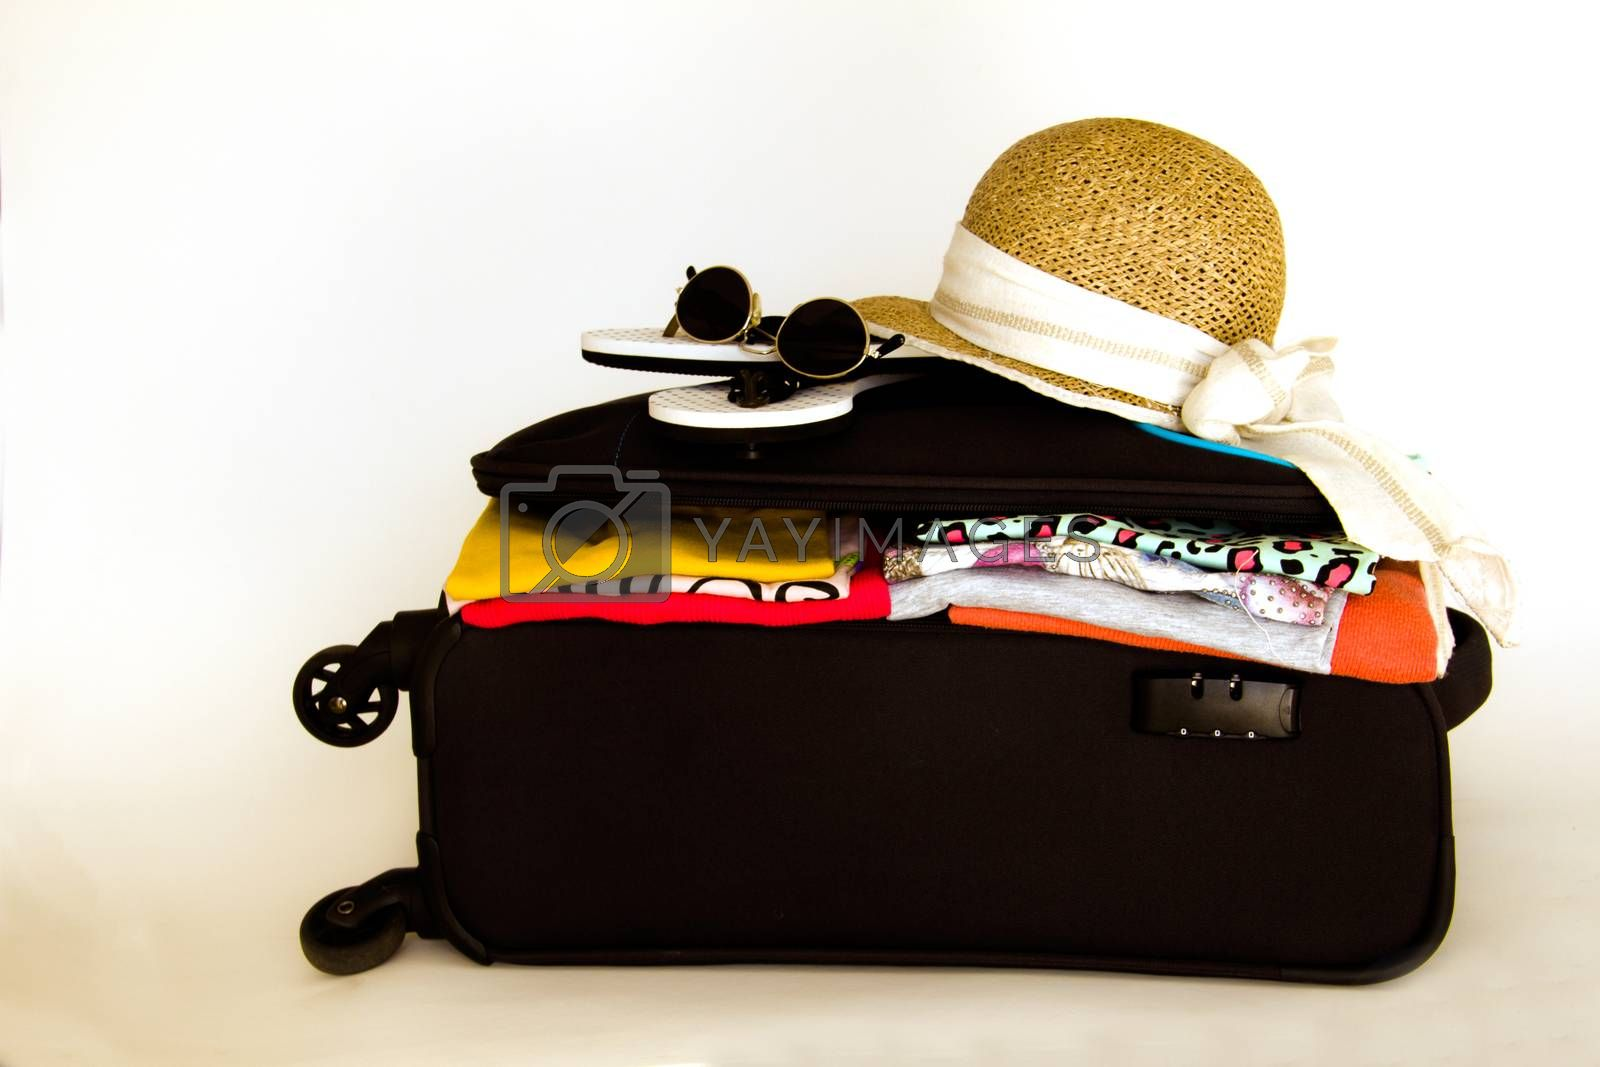 opened suitcase containing clothes with sunglasses and a hat on the top